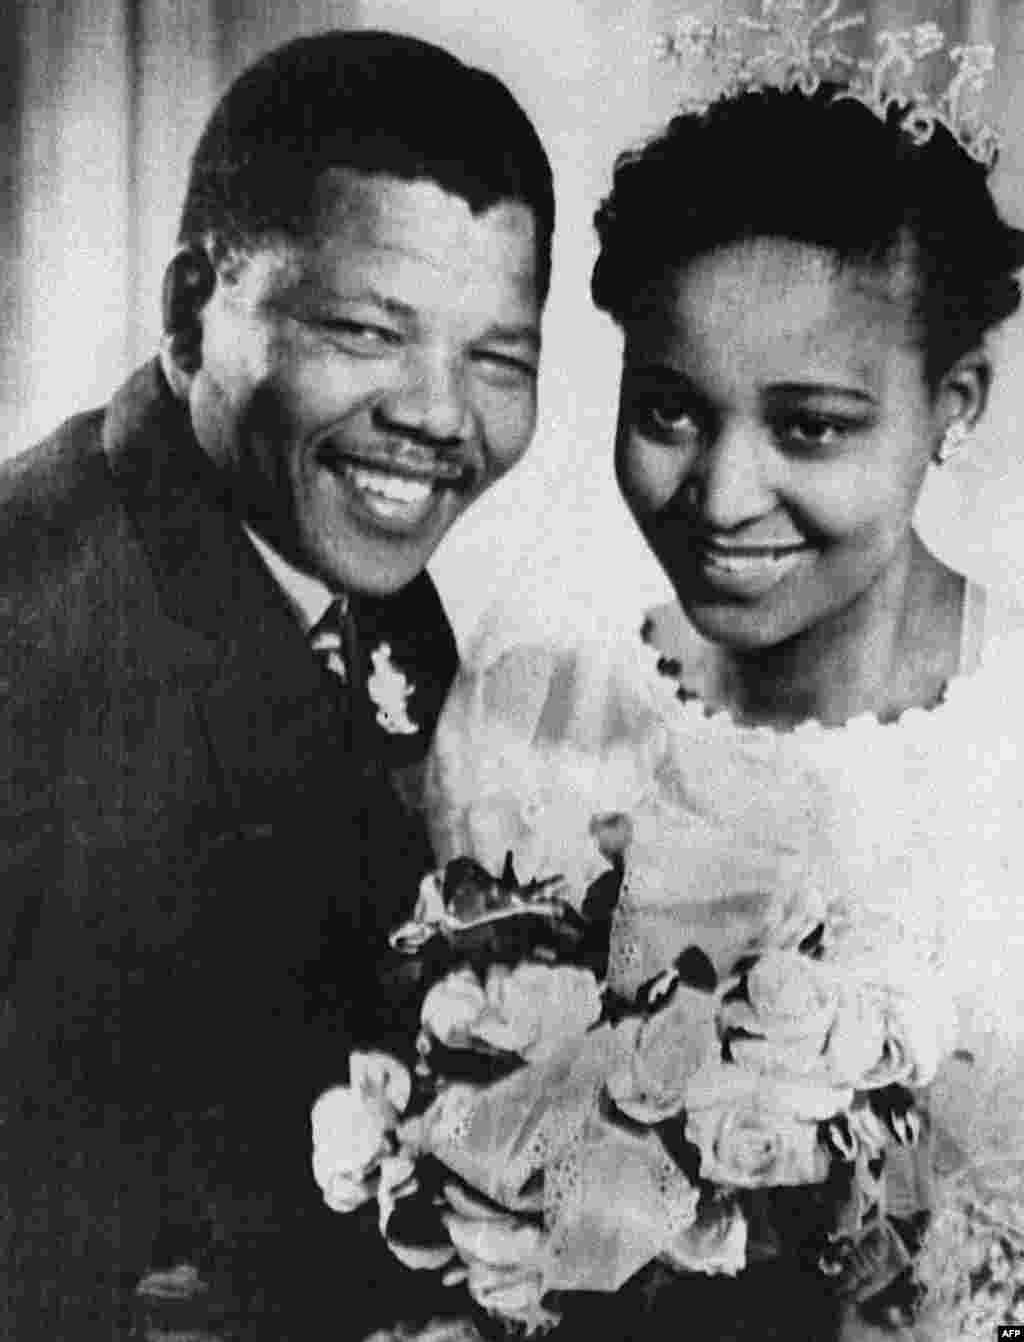 Nelson Mandela poses with his second wife Winnie on their wedding day in 1957.